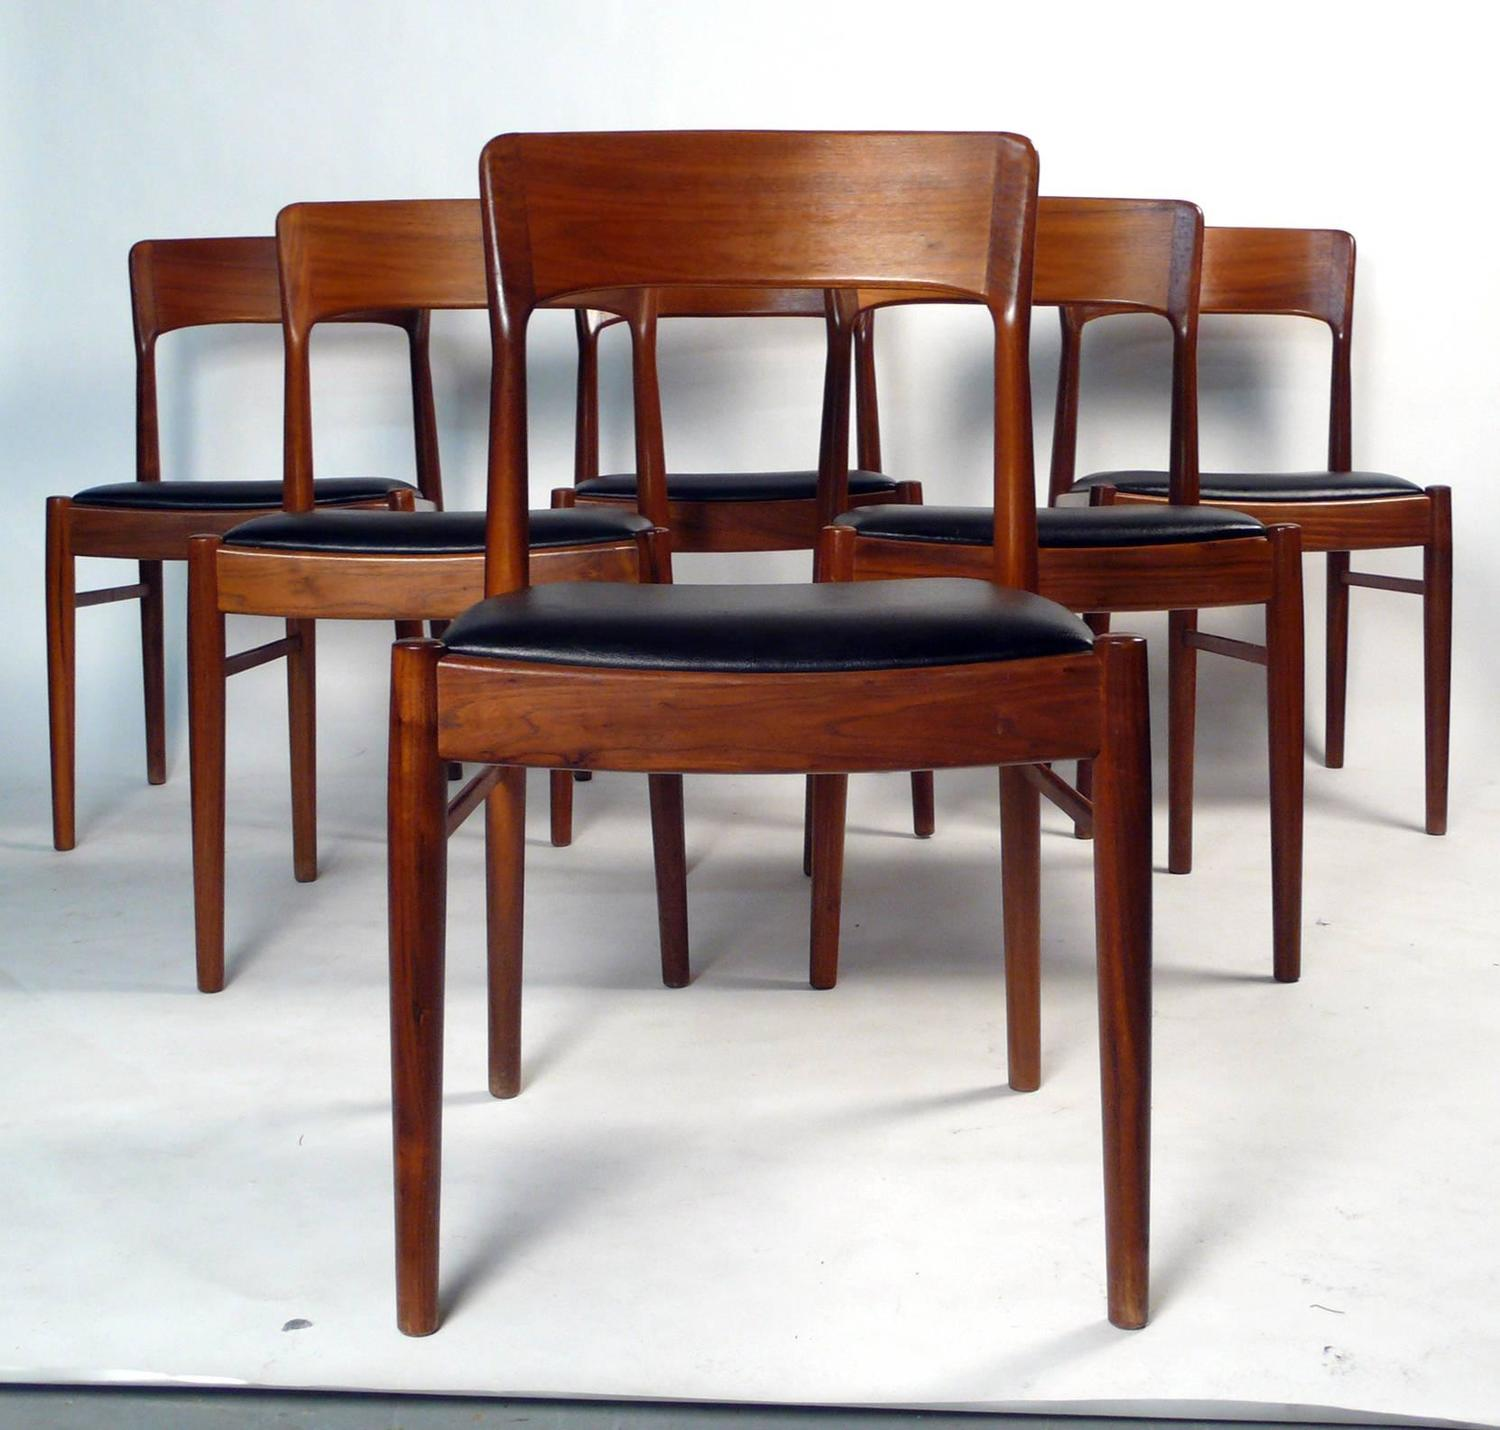 Ks danish dining chairs for sale at stdibs